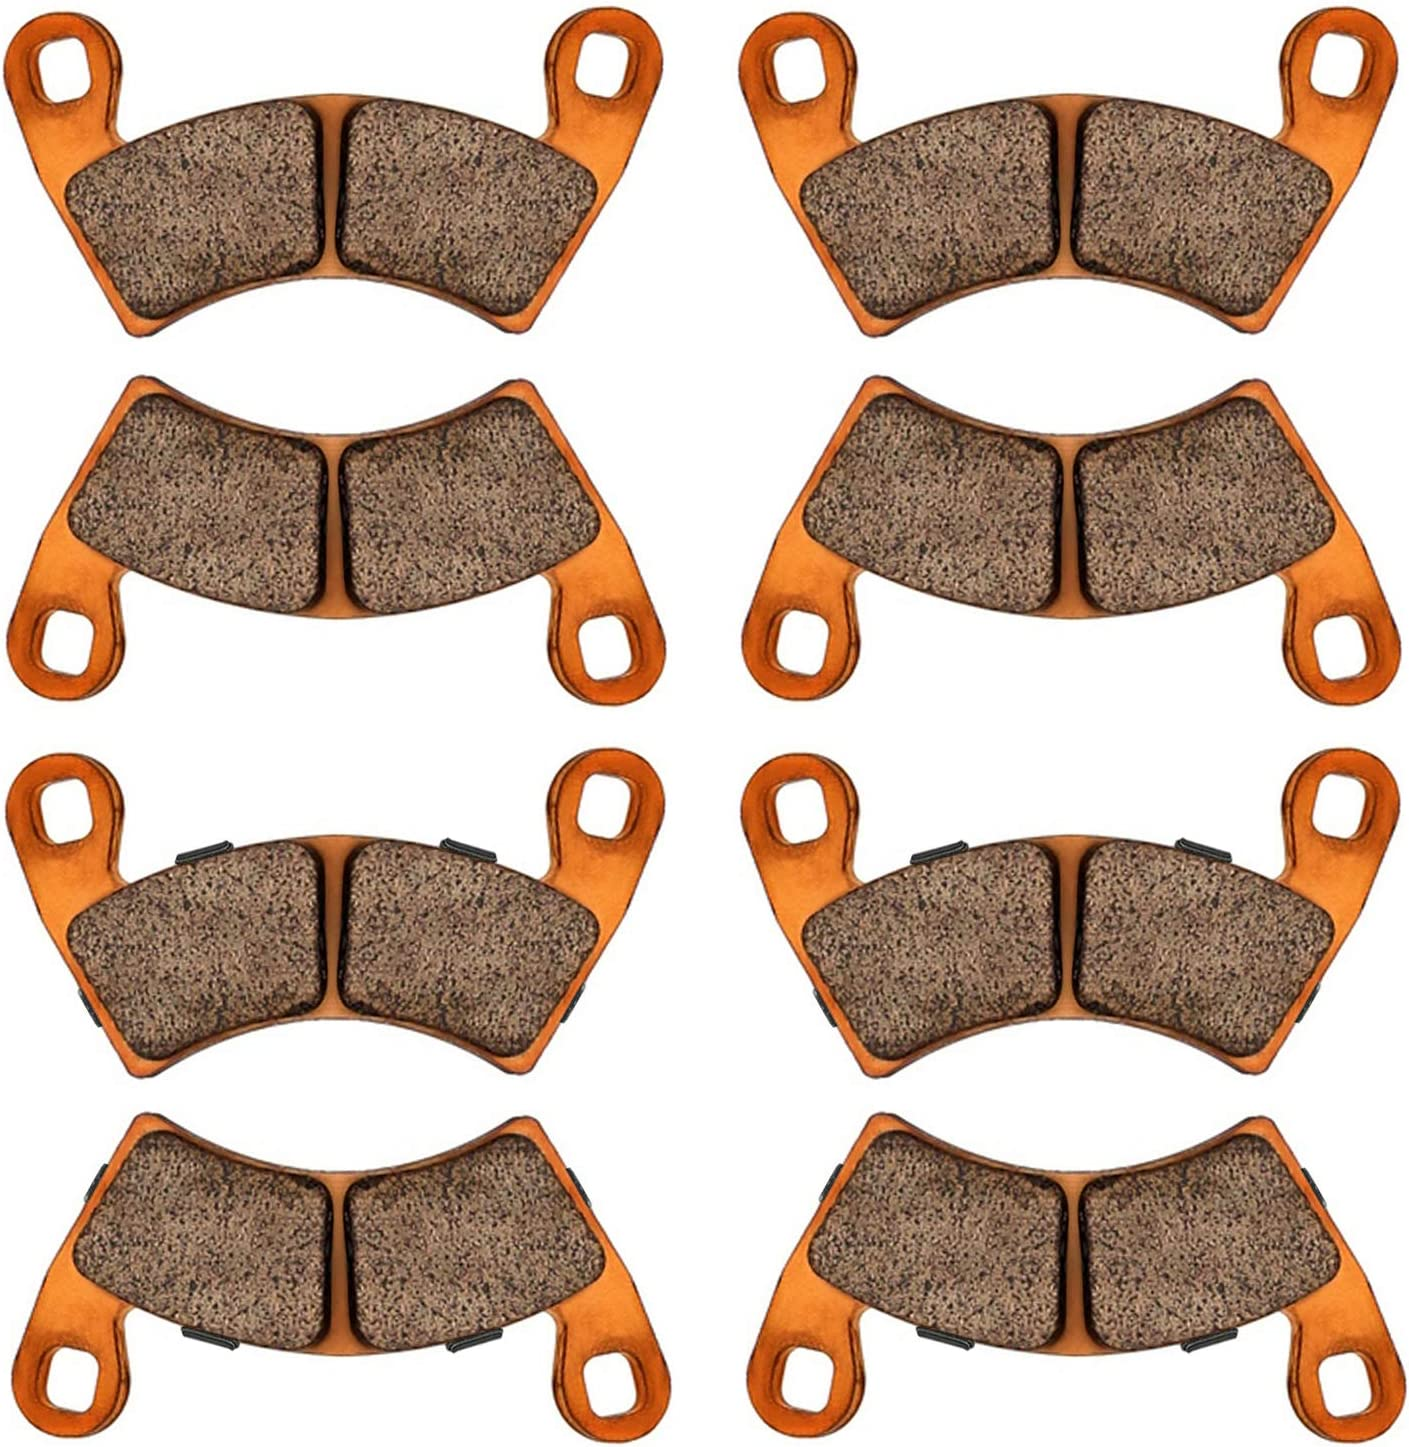 Surprise price Brake Pads for Polaris RZR S 900 Set 2015-2019 4 R EPS Very popular! and Front